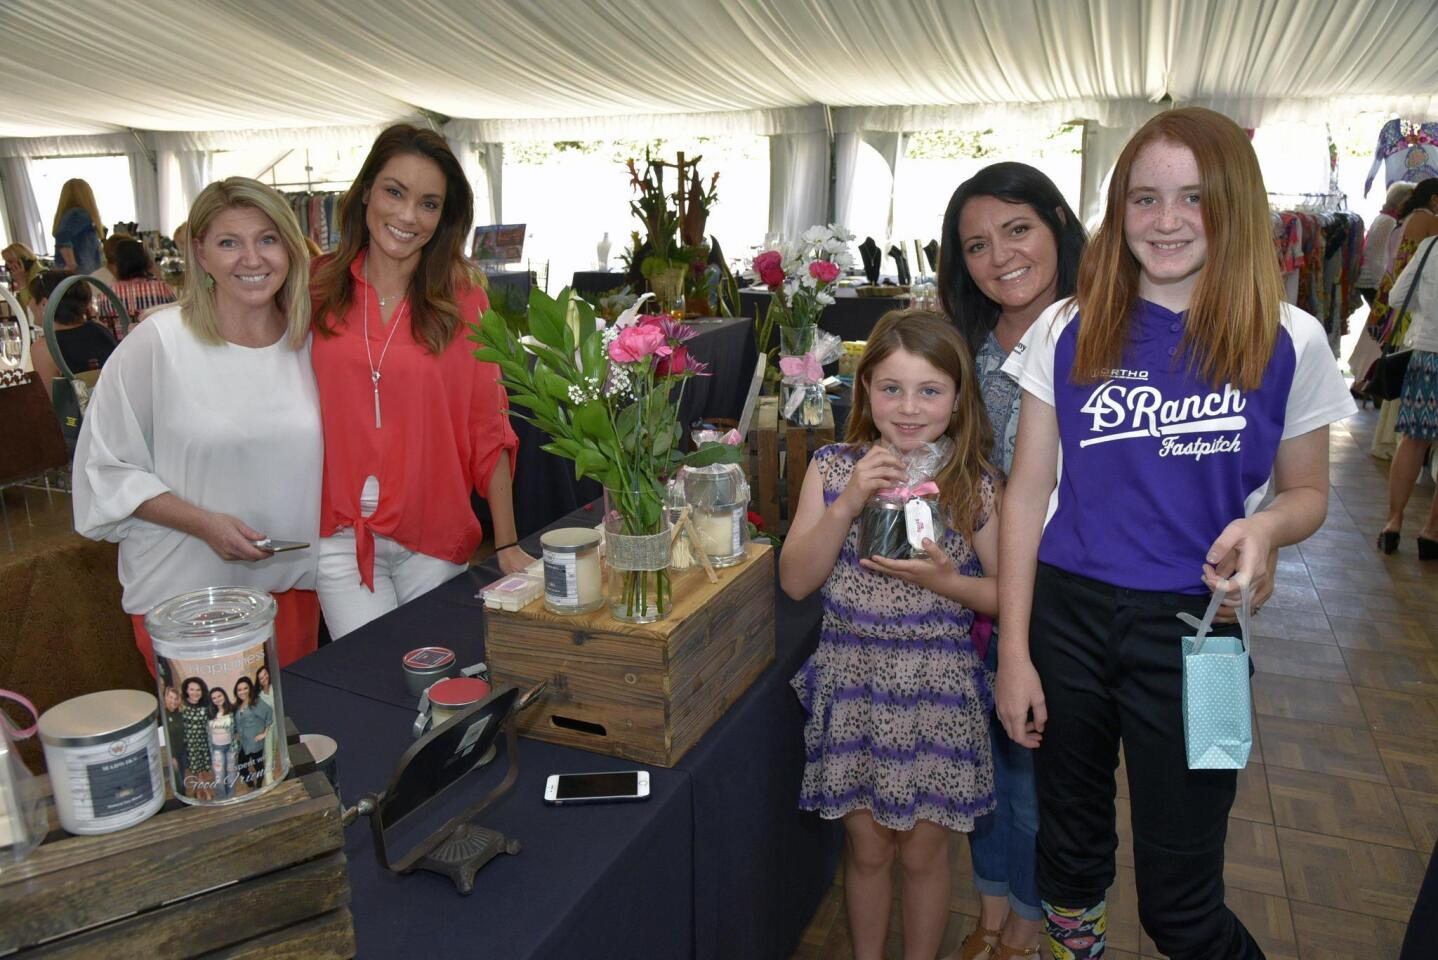 Natalie Wilson and Chi Phung of Madwicks.com, Julie Jarvis with Scarlett and Mia